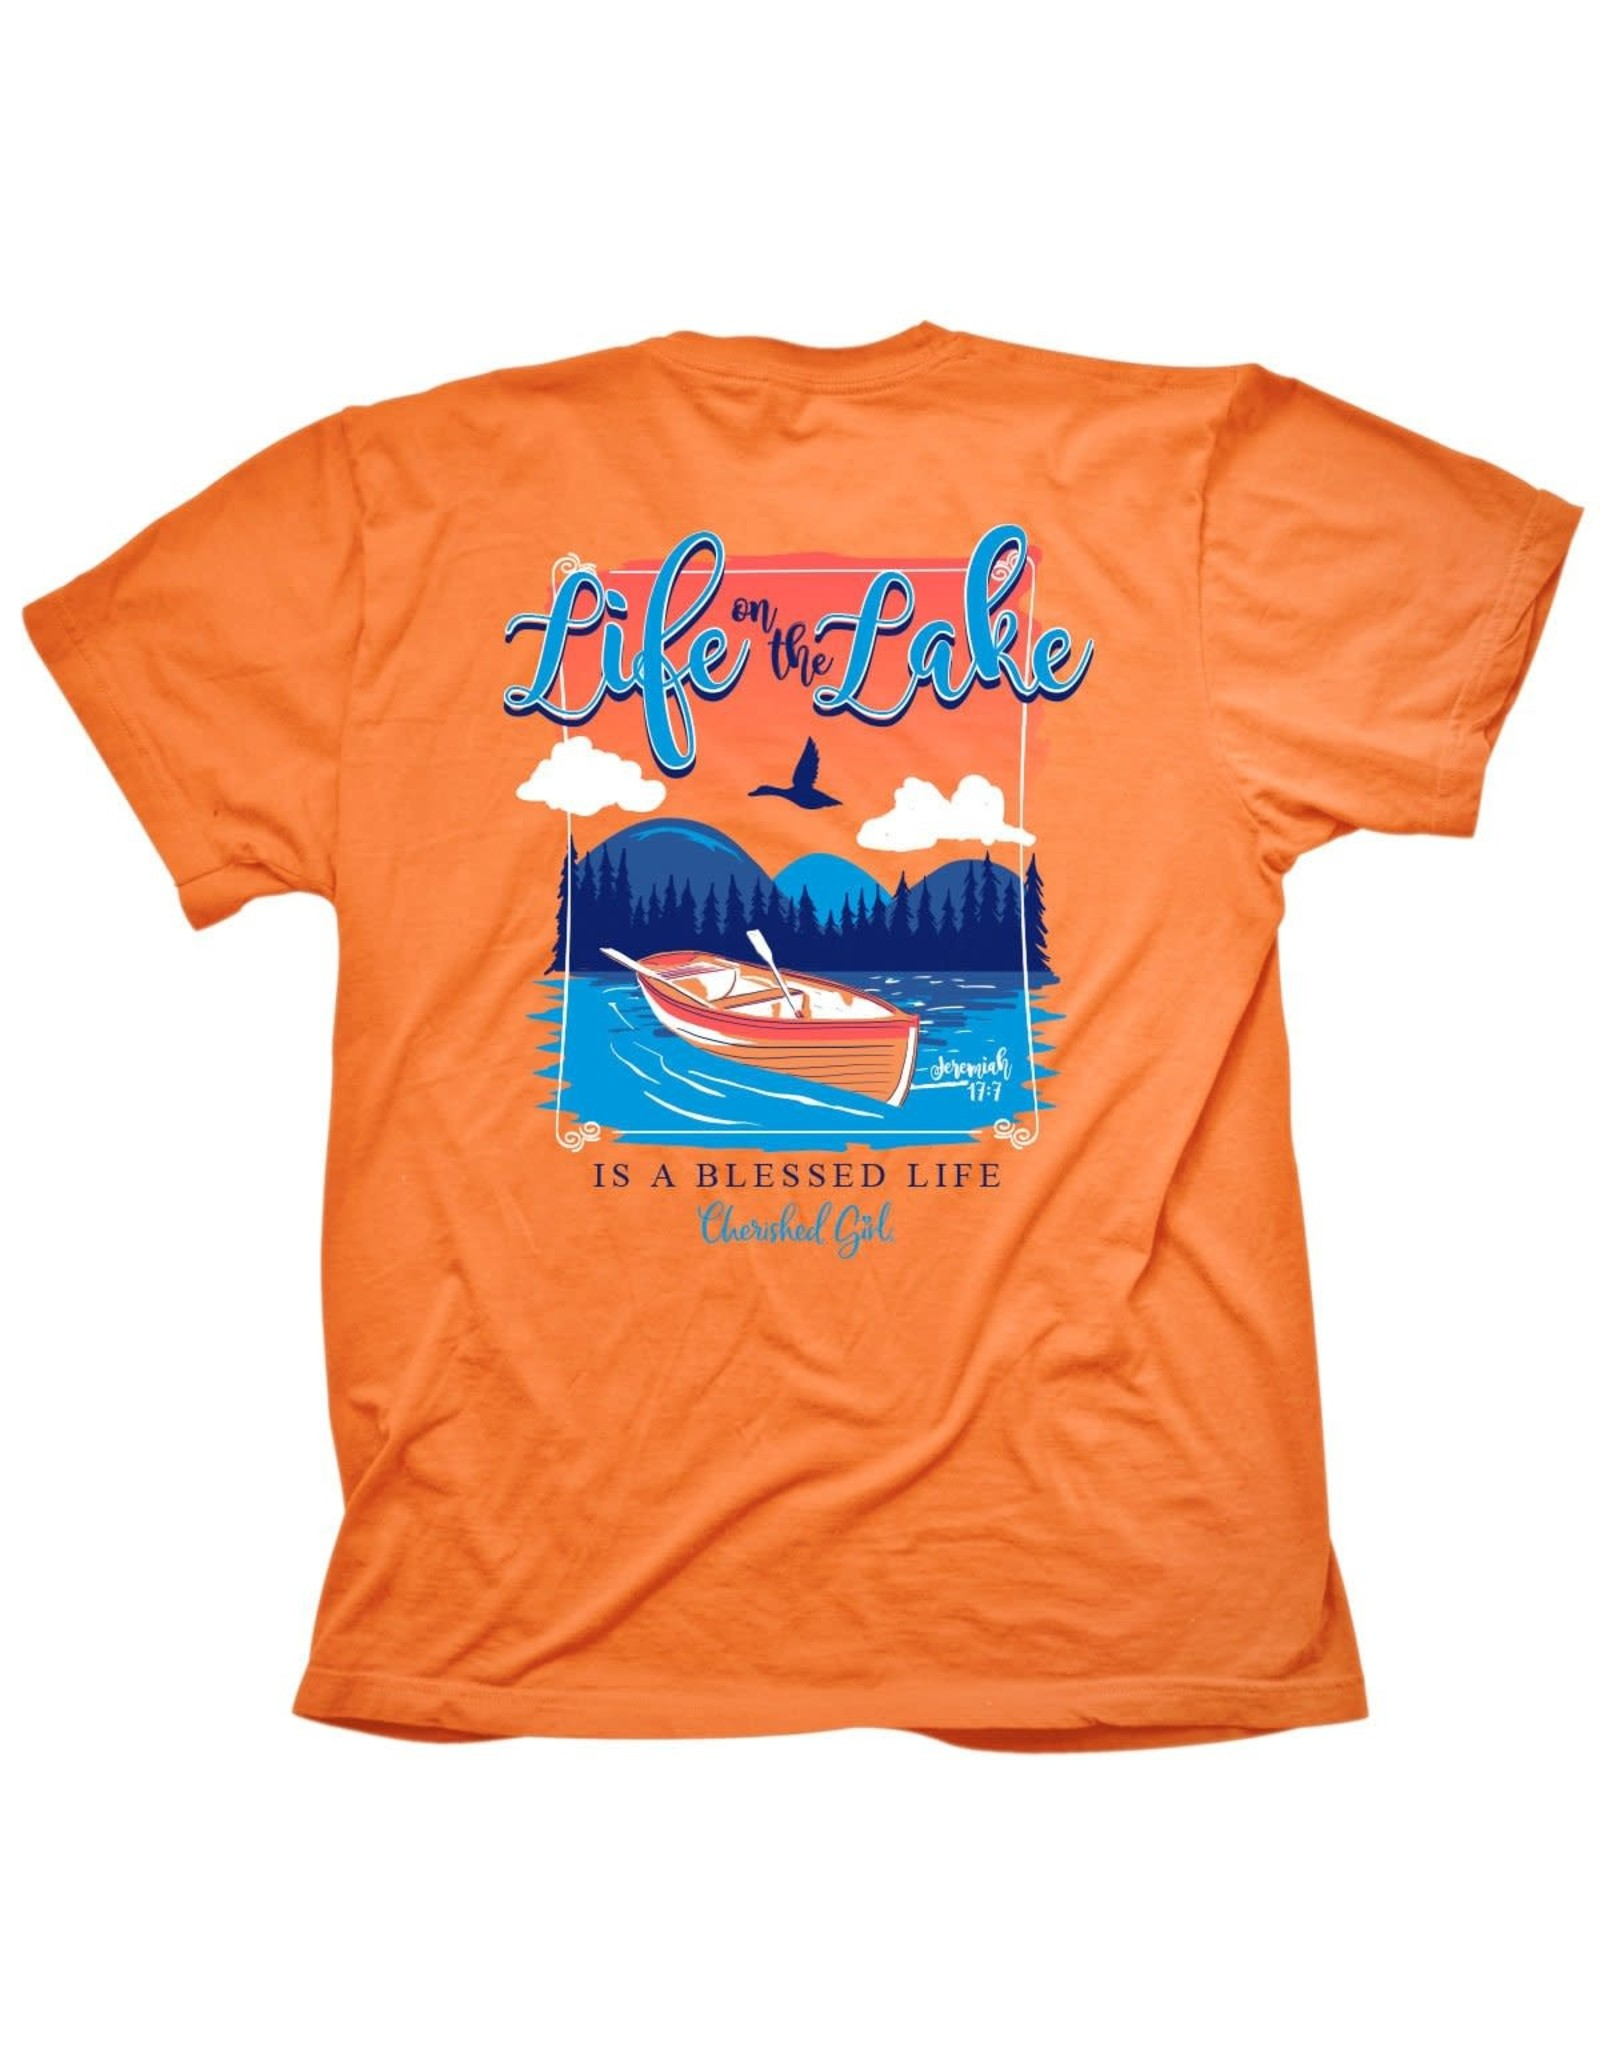 Adult Shirt - Life on the Lake (Blessed Life)